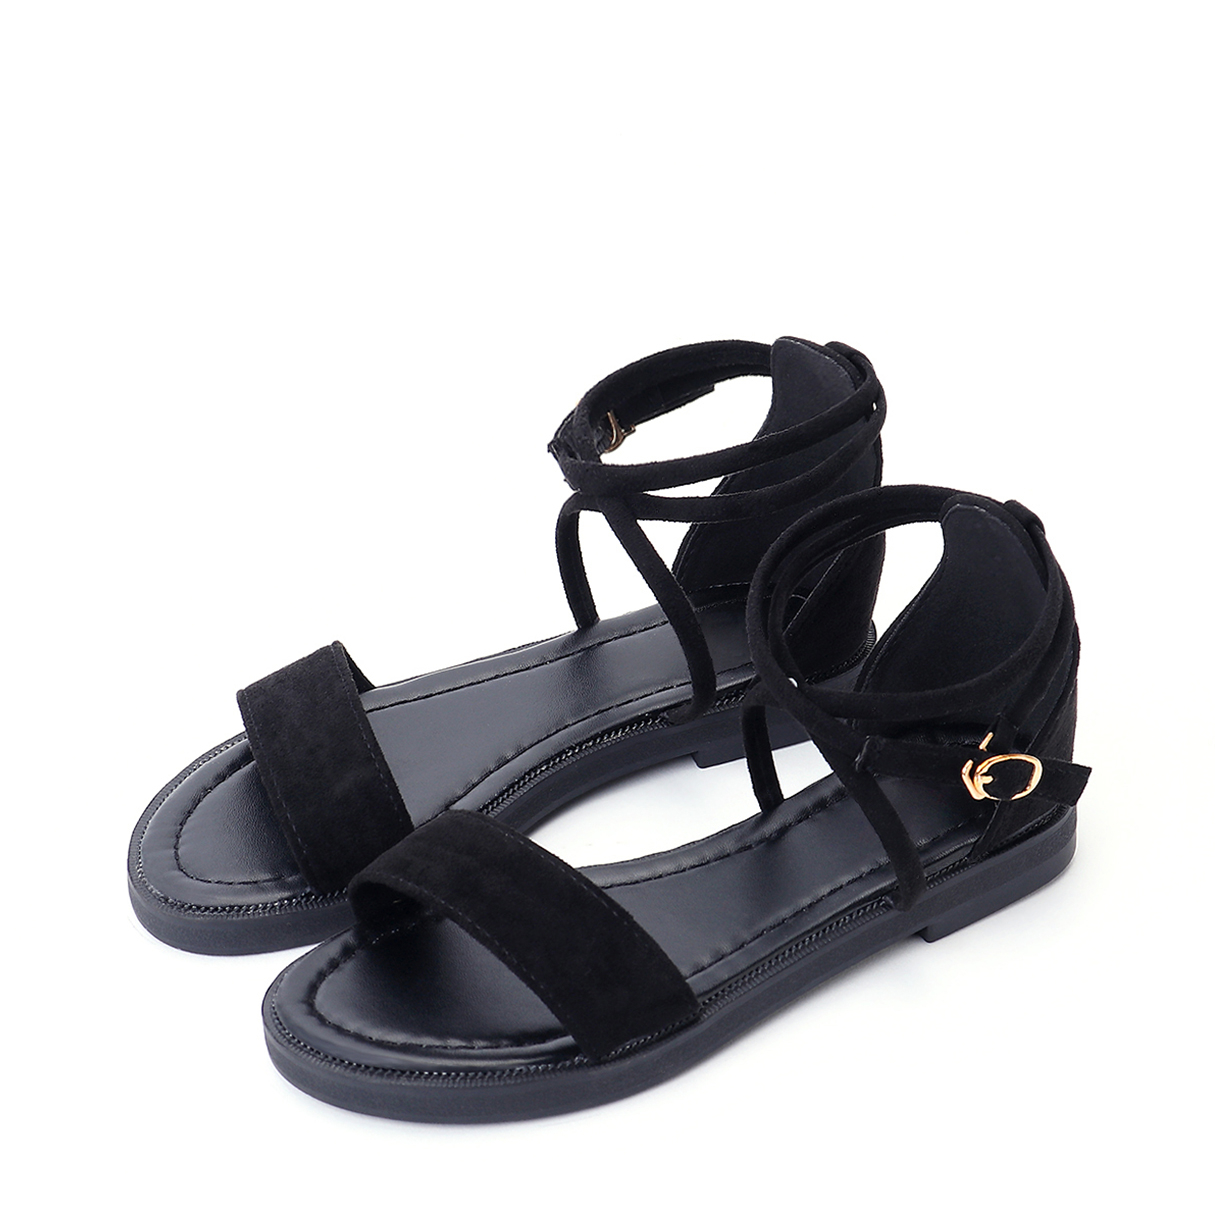 Black Suede Metallic Buckle Gladiator Sandals 2017 summer new fashion women cross tied lace up gladiator sandals red suede high heel sandals